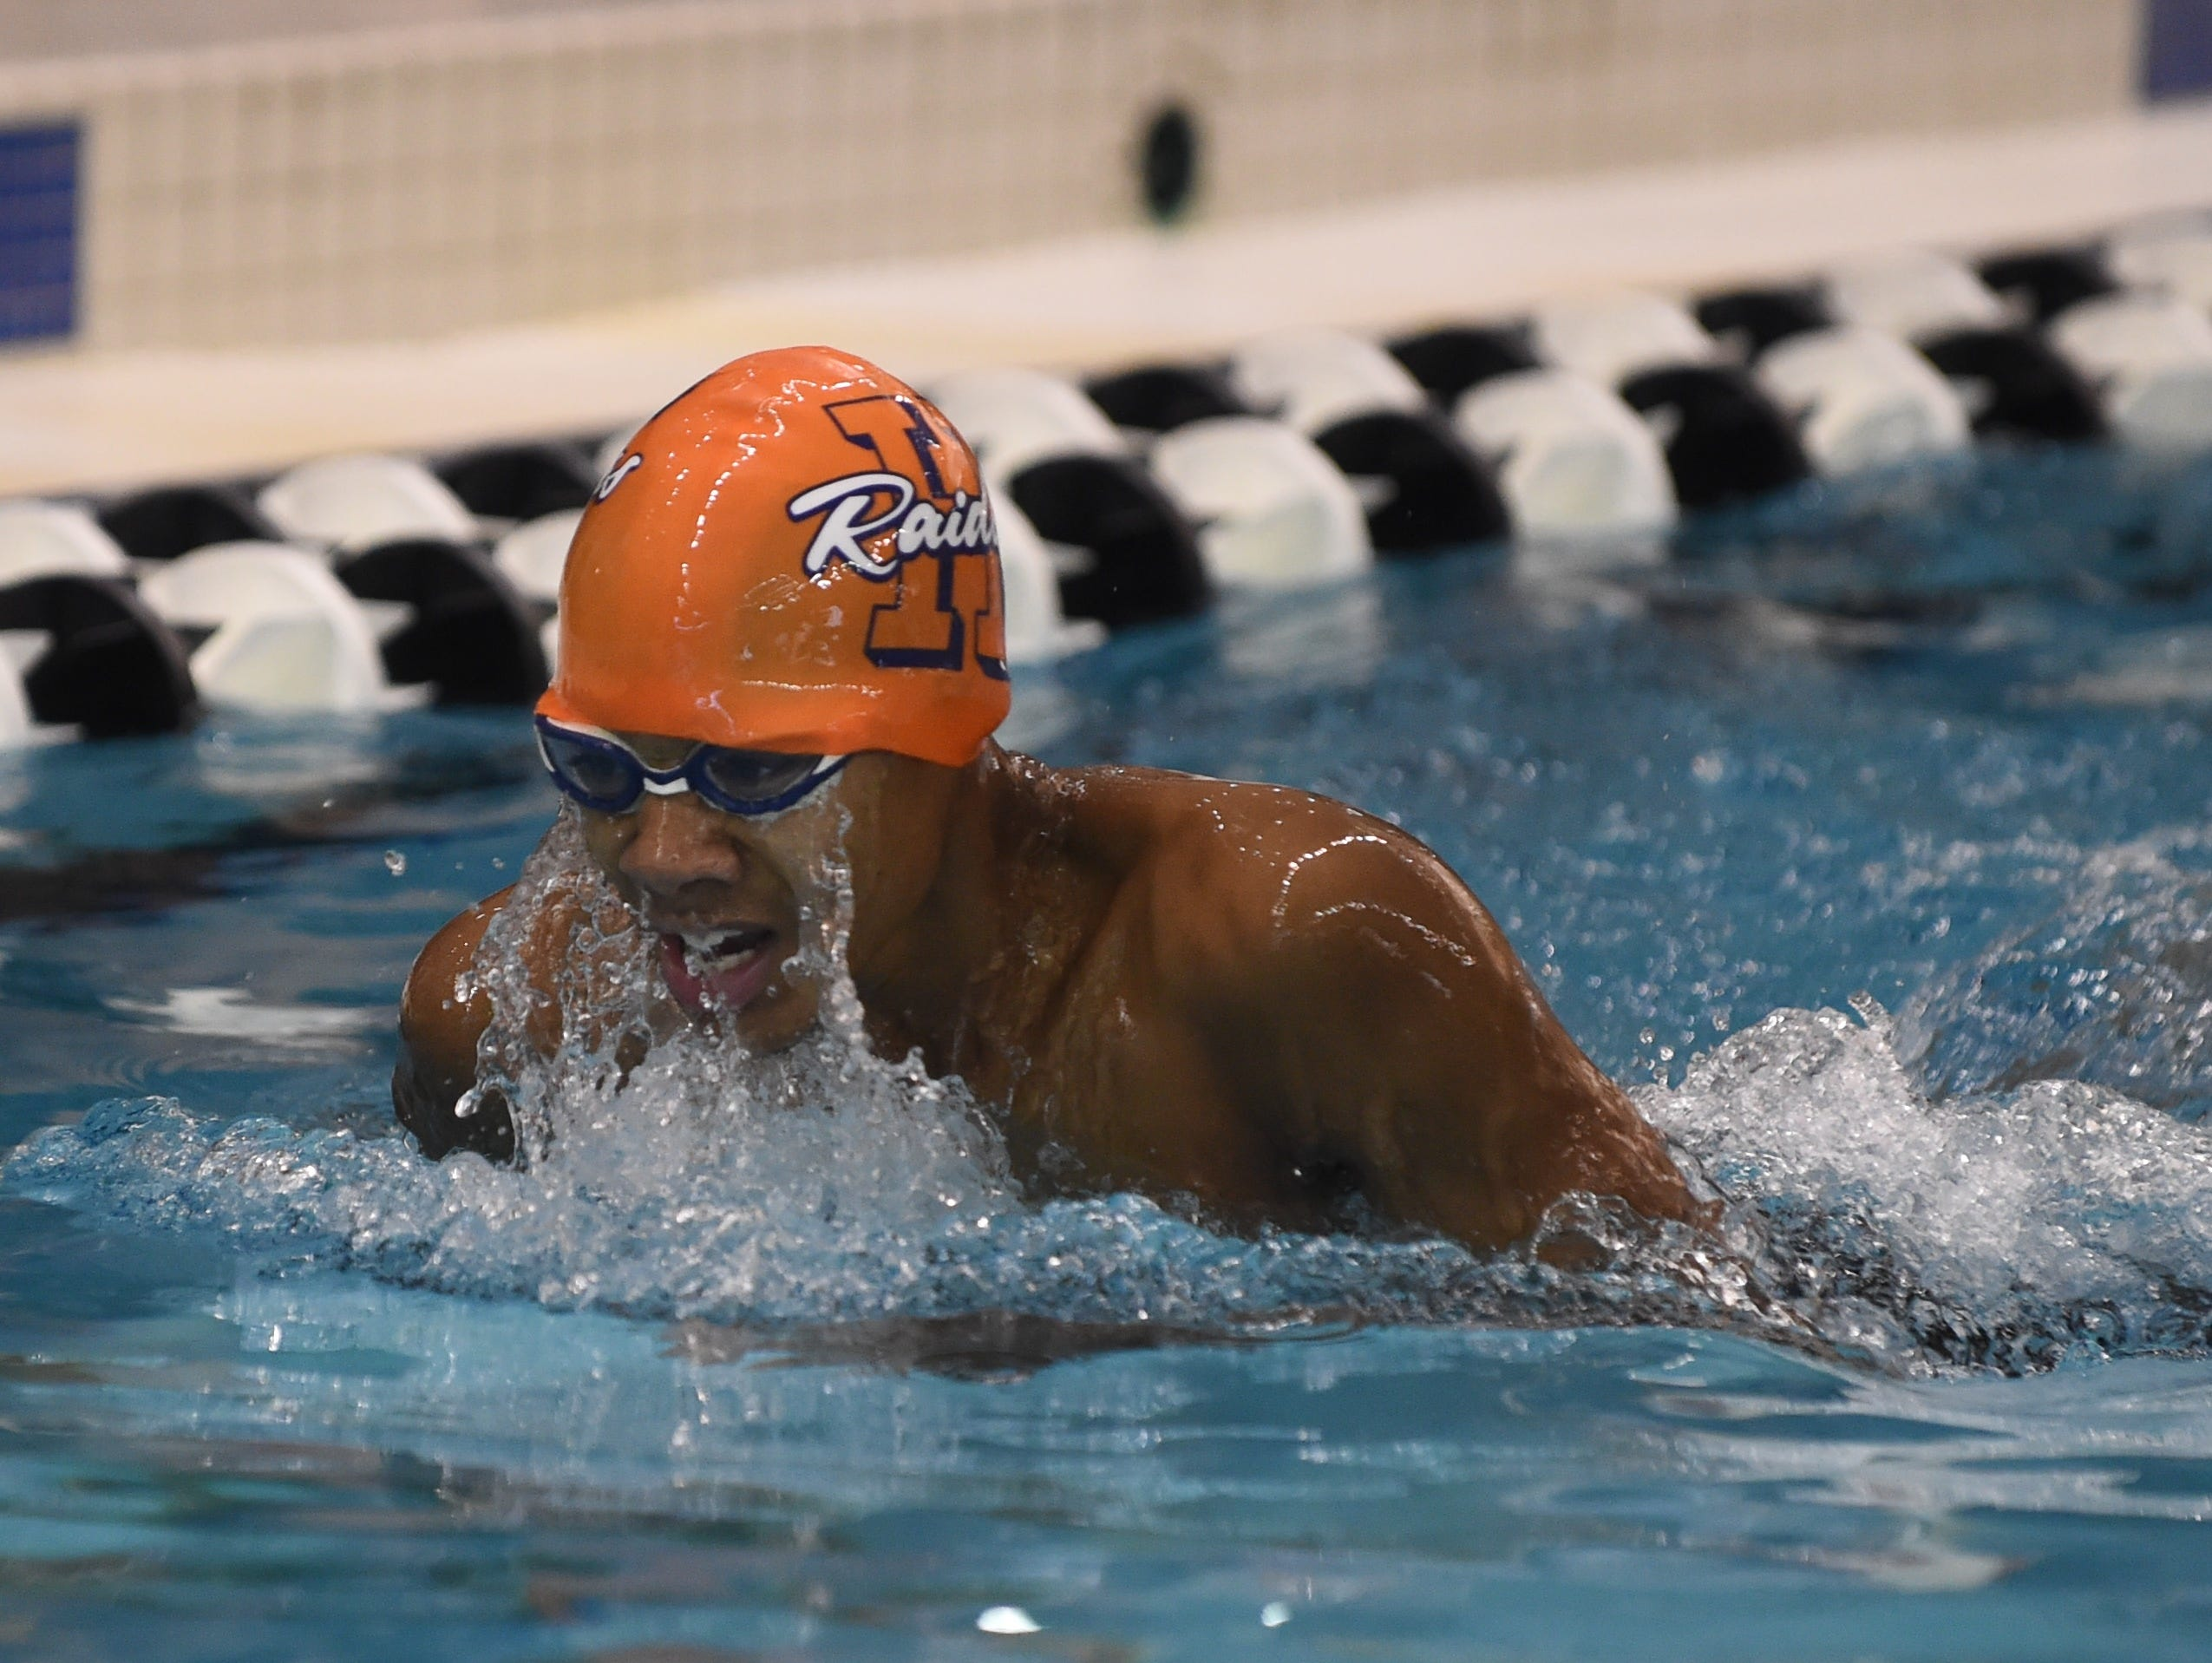 Images from Saturday's North Central Conference Swimming and Diving Championships at Purdue. Malakai Strong.